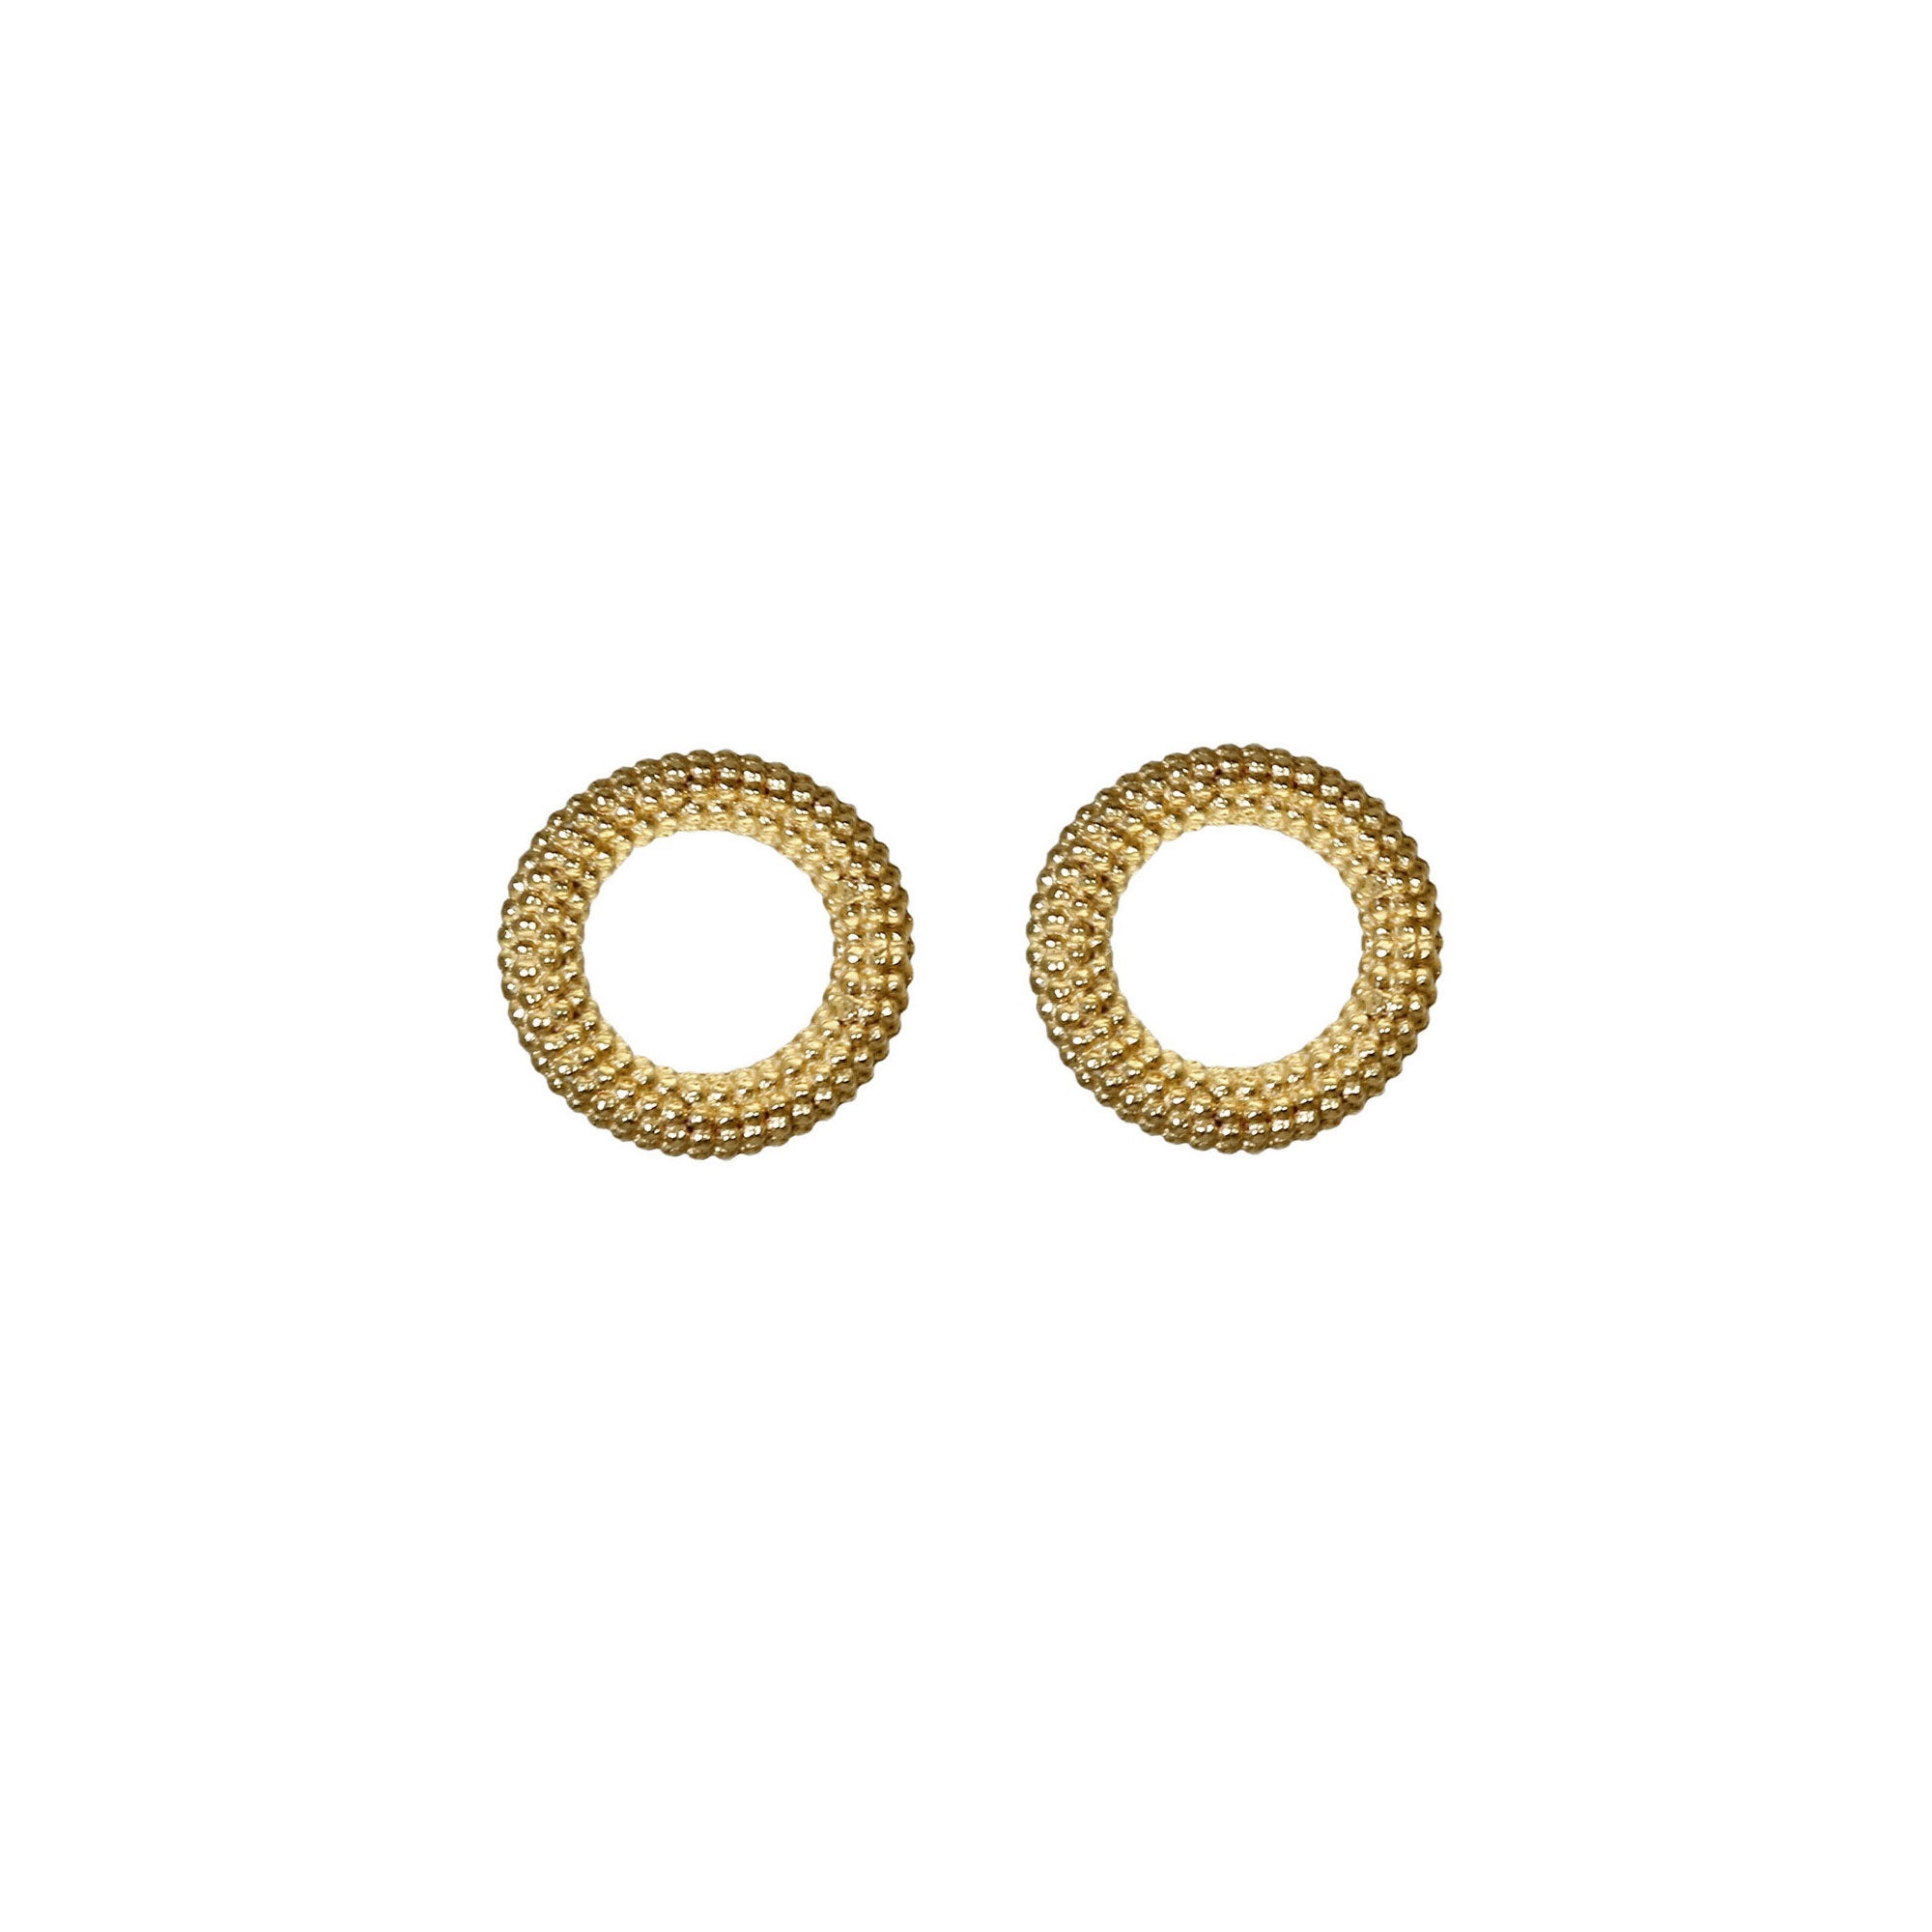 Tyro Yellow Gold Circular Stud Earrings